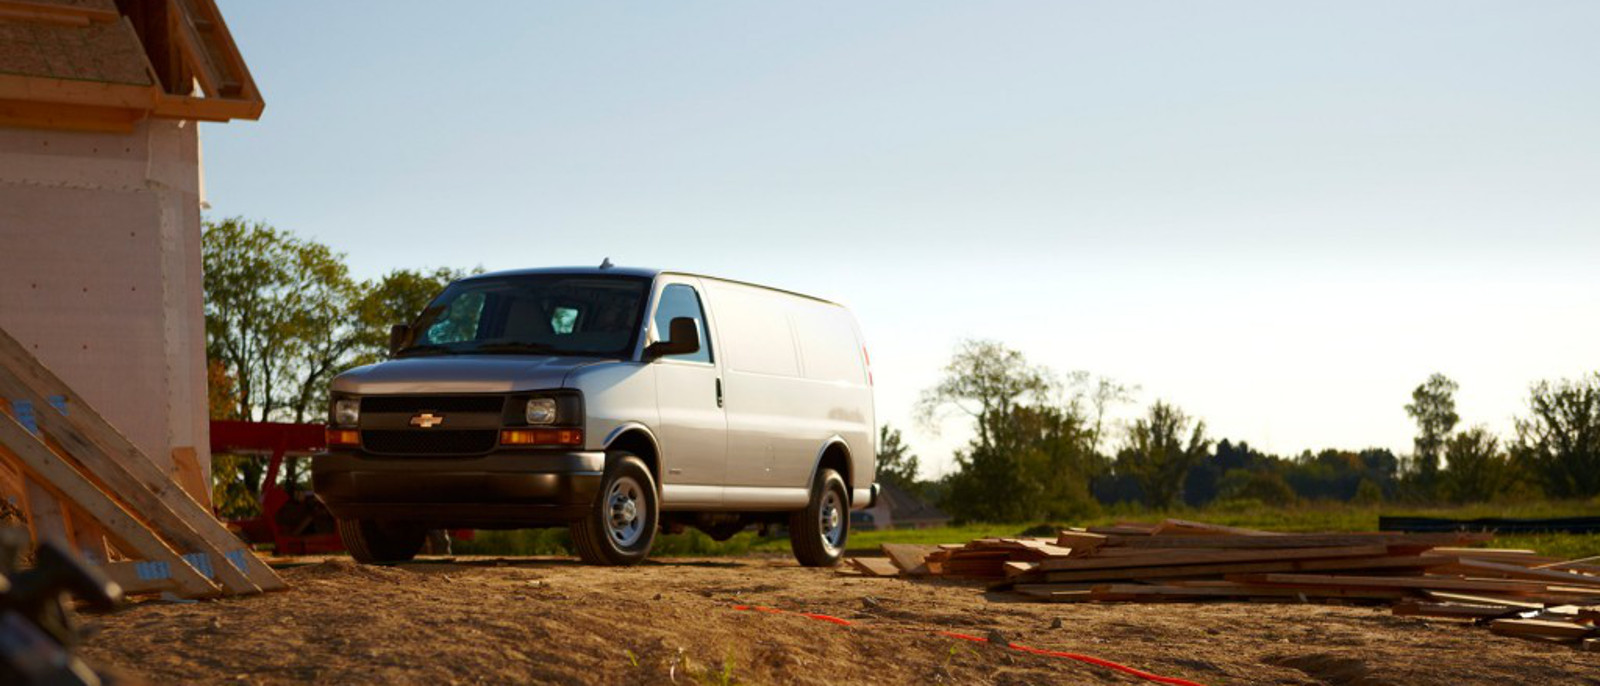 2016 Chevrolet Express Cargo Van on work site